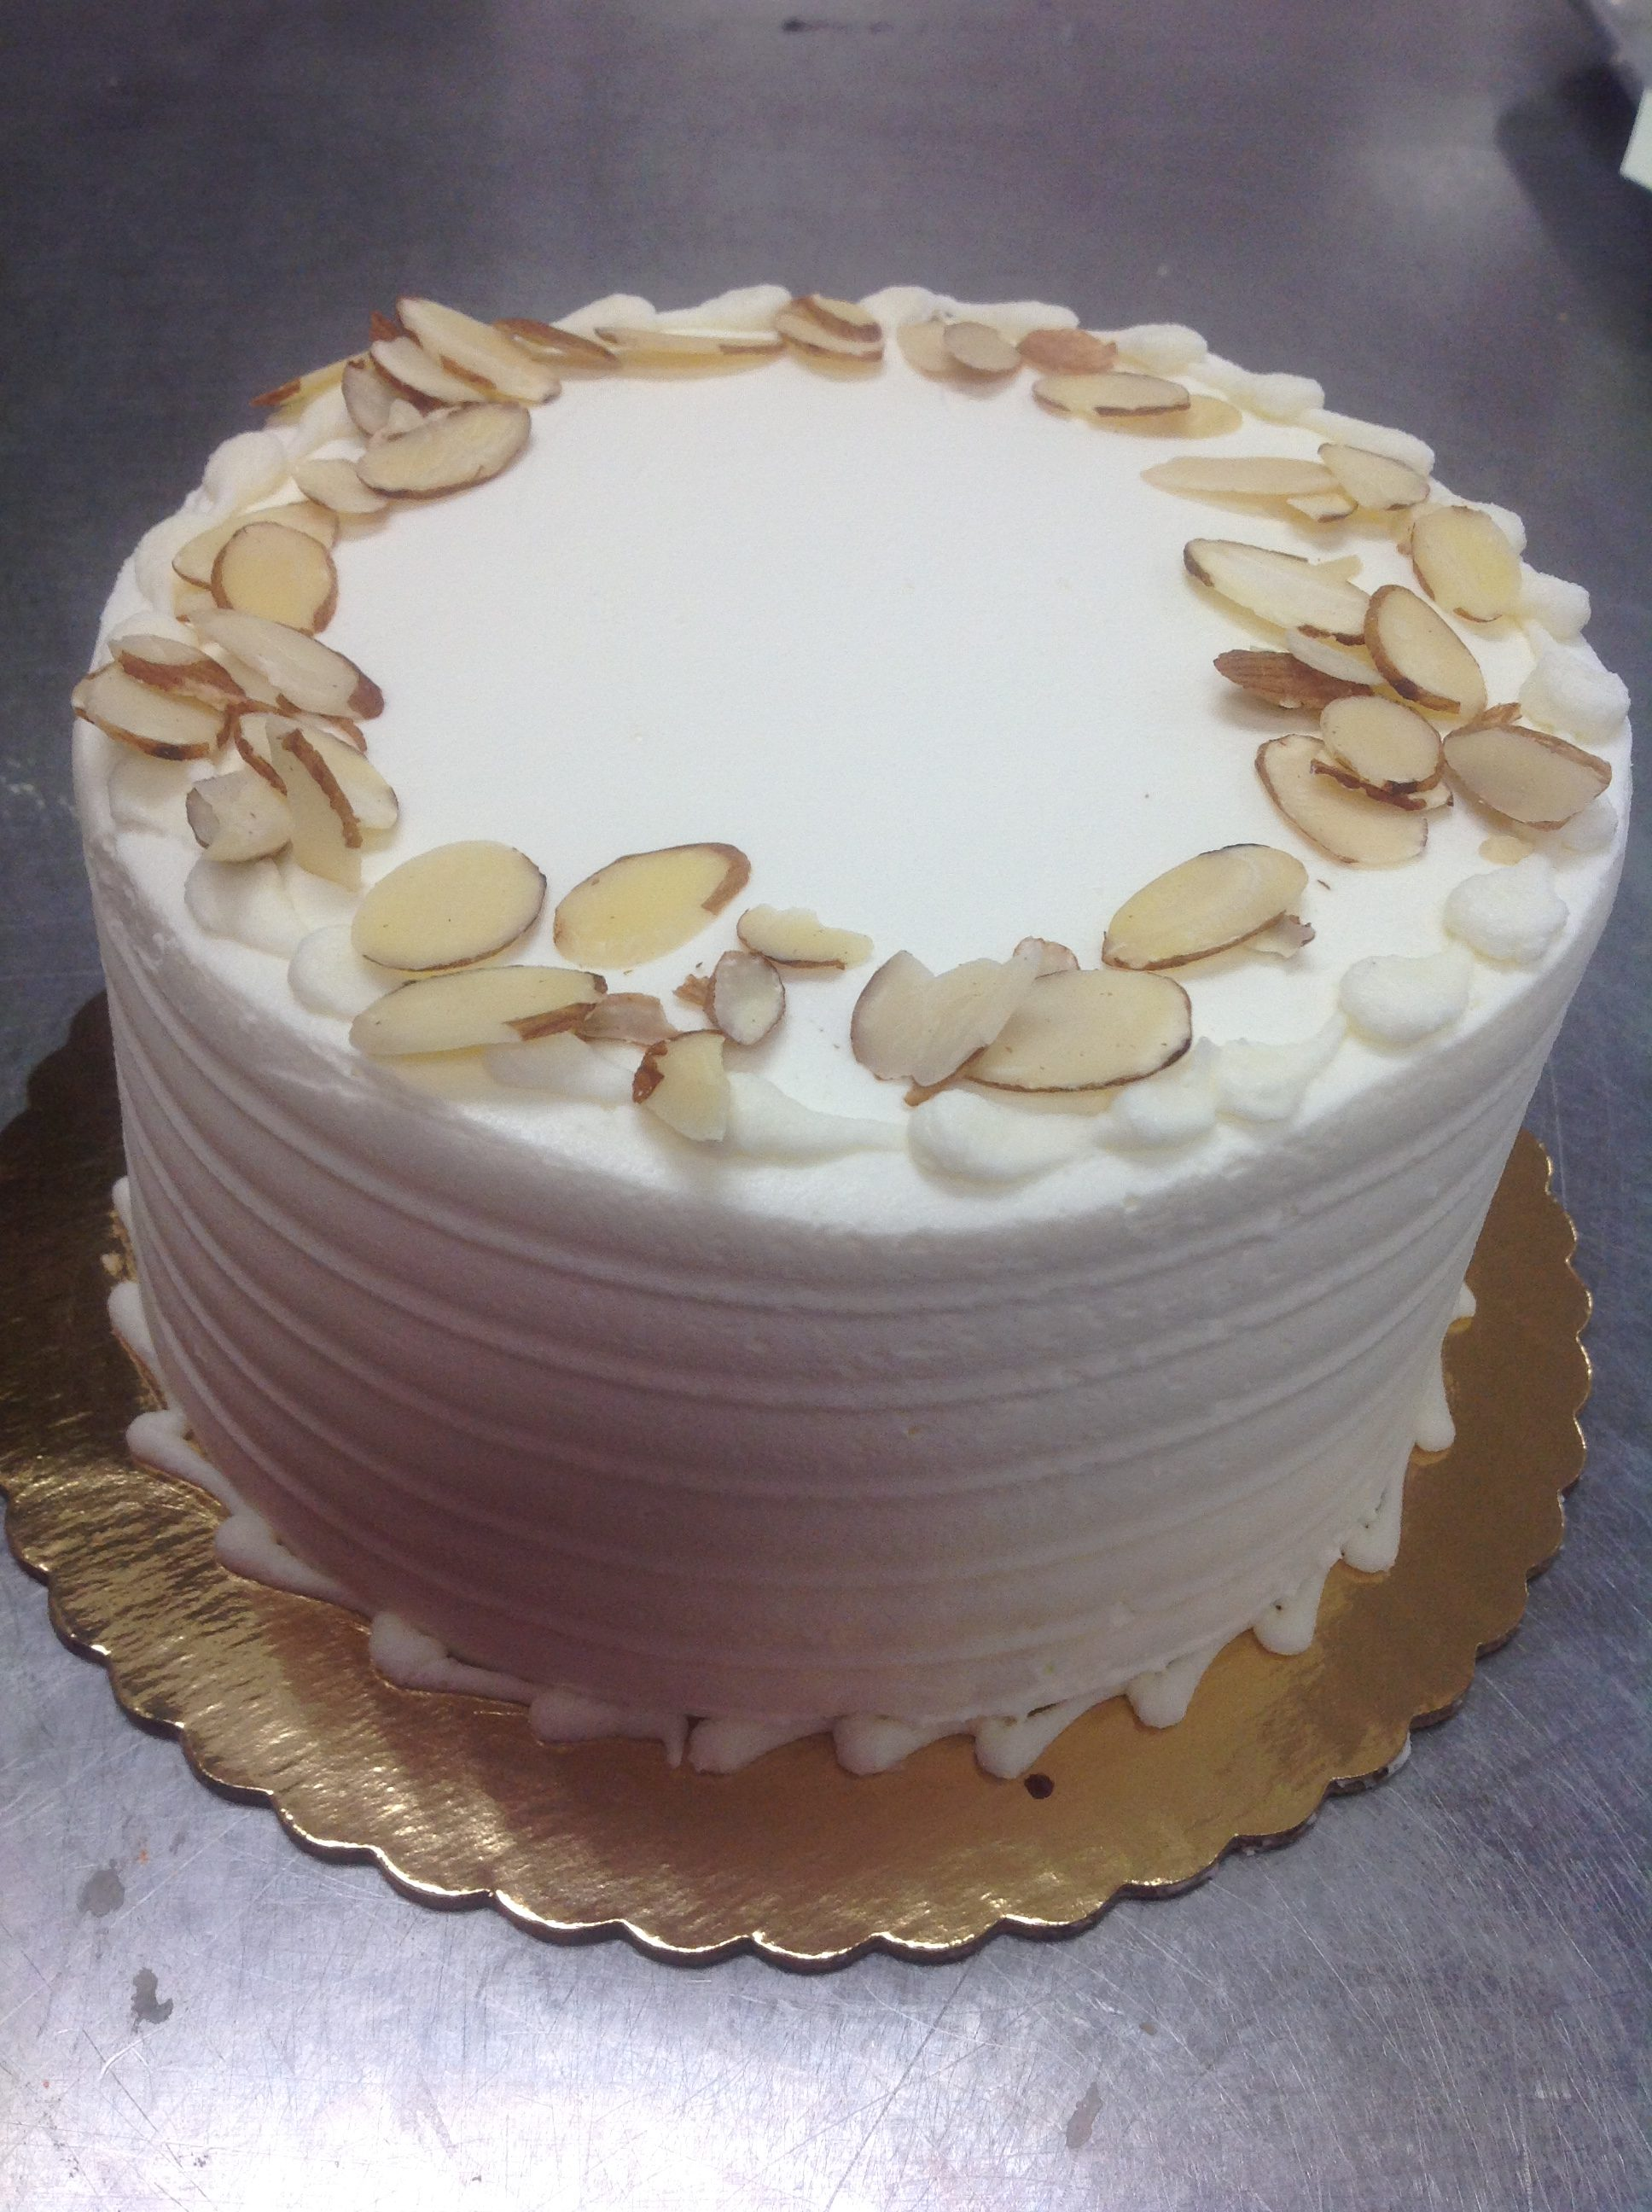 Italian Cream Cake at dolce and biscotti